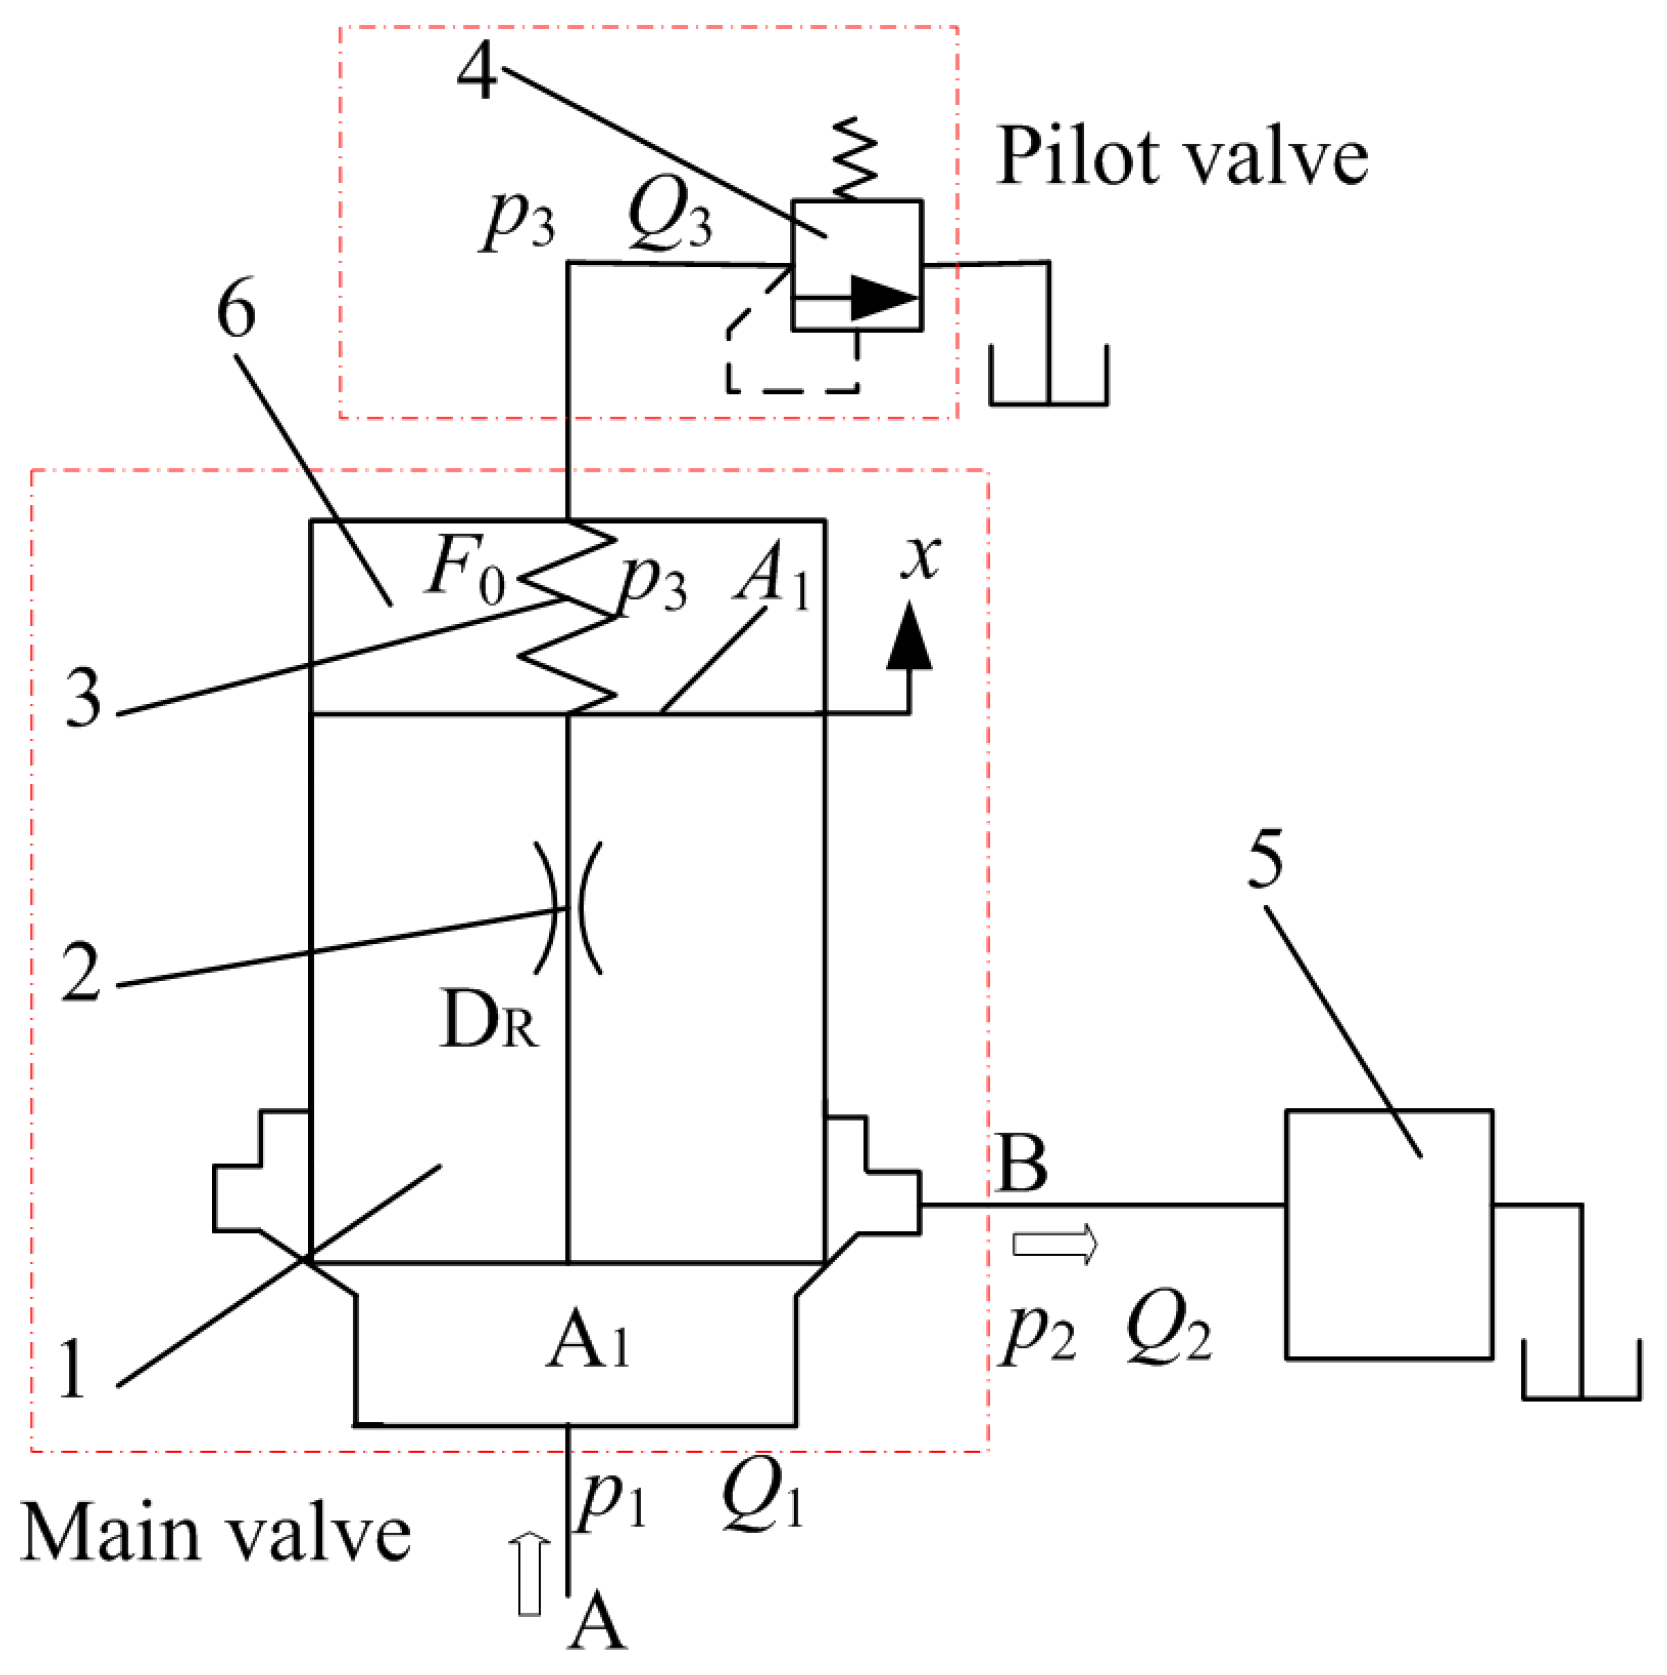 Hydraulic Relief Valve Diagram Trusted Wiring Diagrams